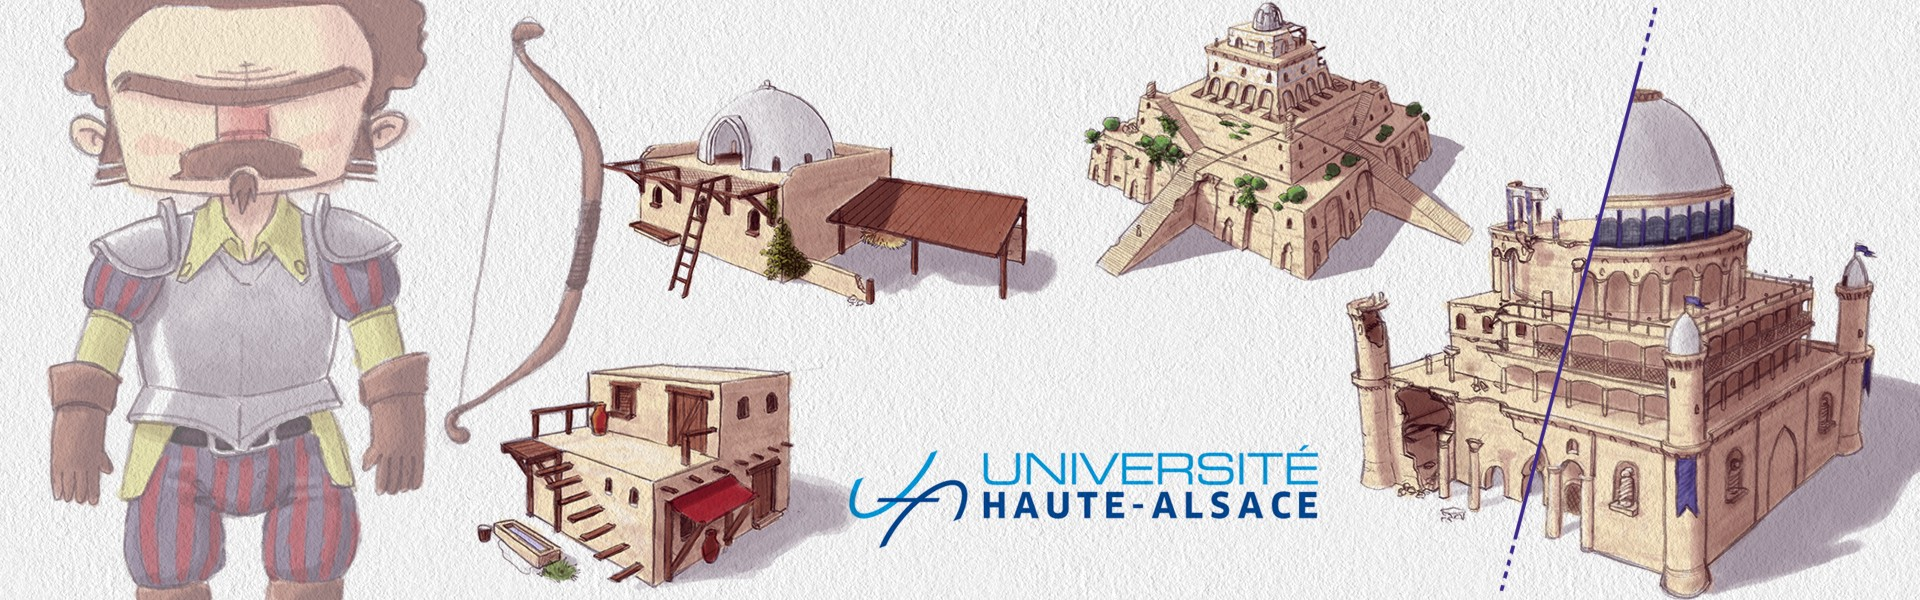 Universite haute alsace